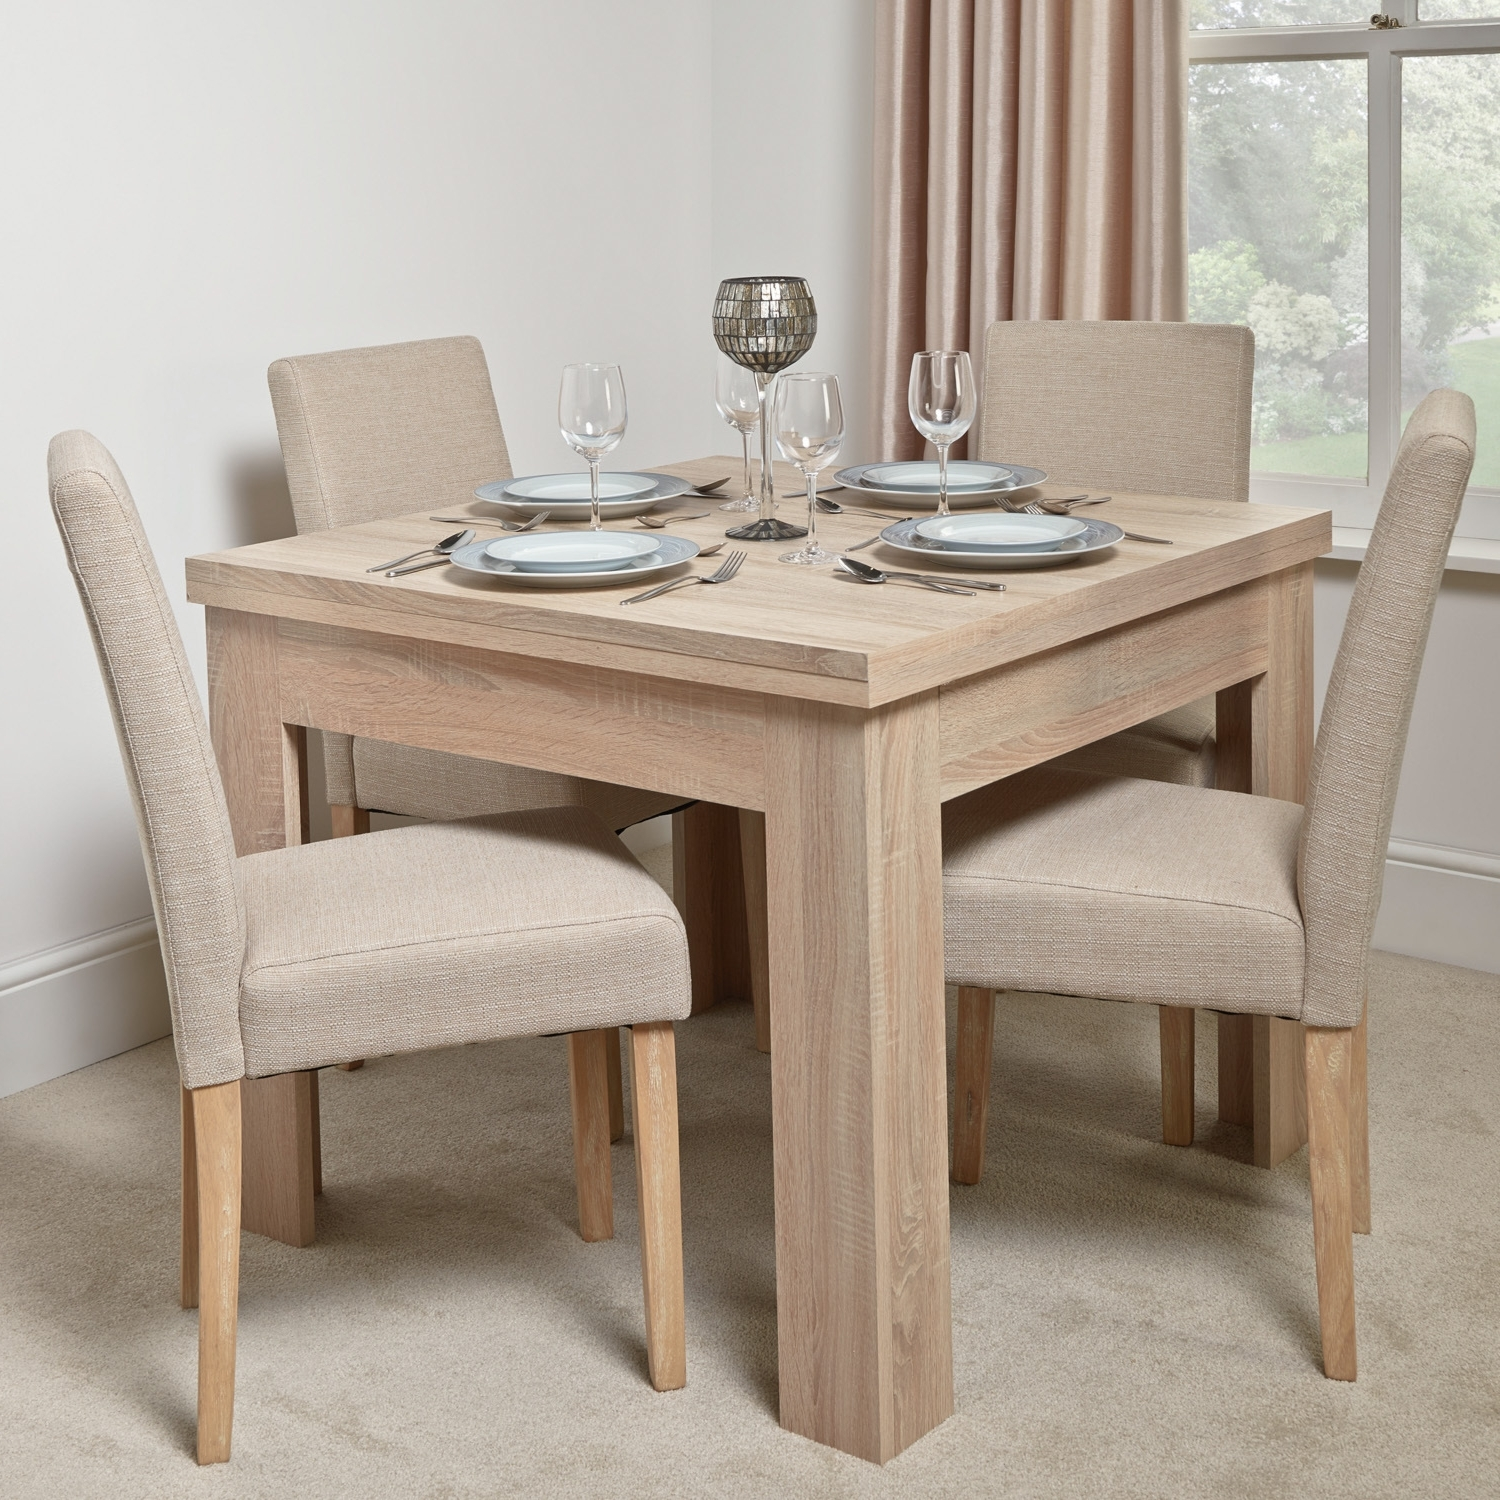 Extending Dining Tables Sets For Well Known Calpe Flip Extending Dining Table (View 6 of 25)